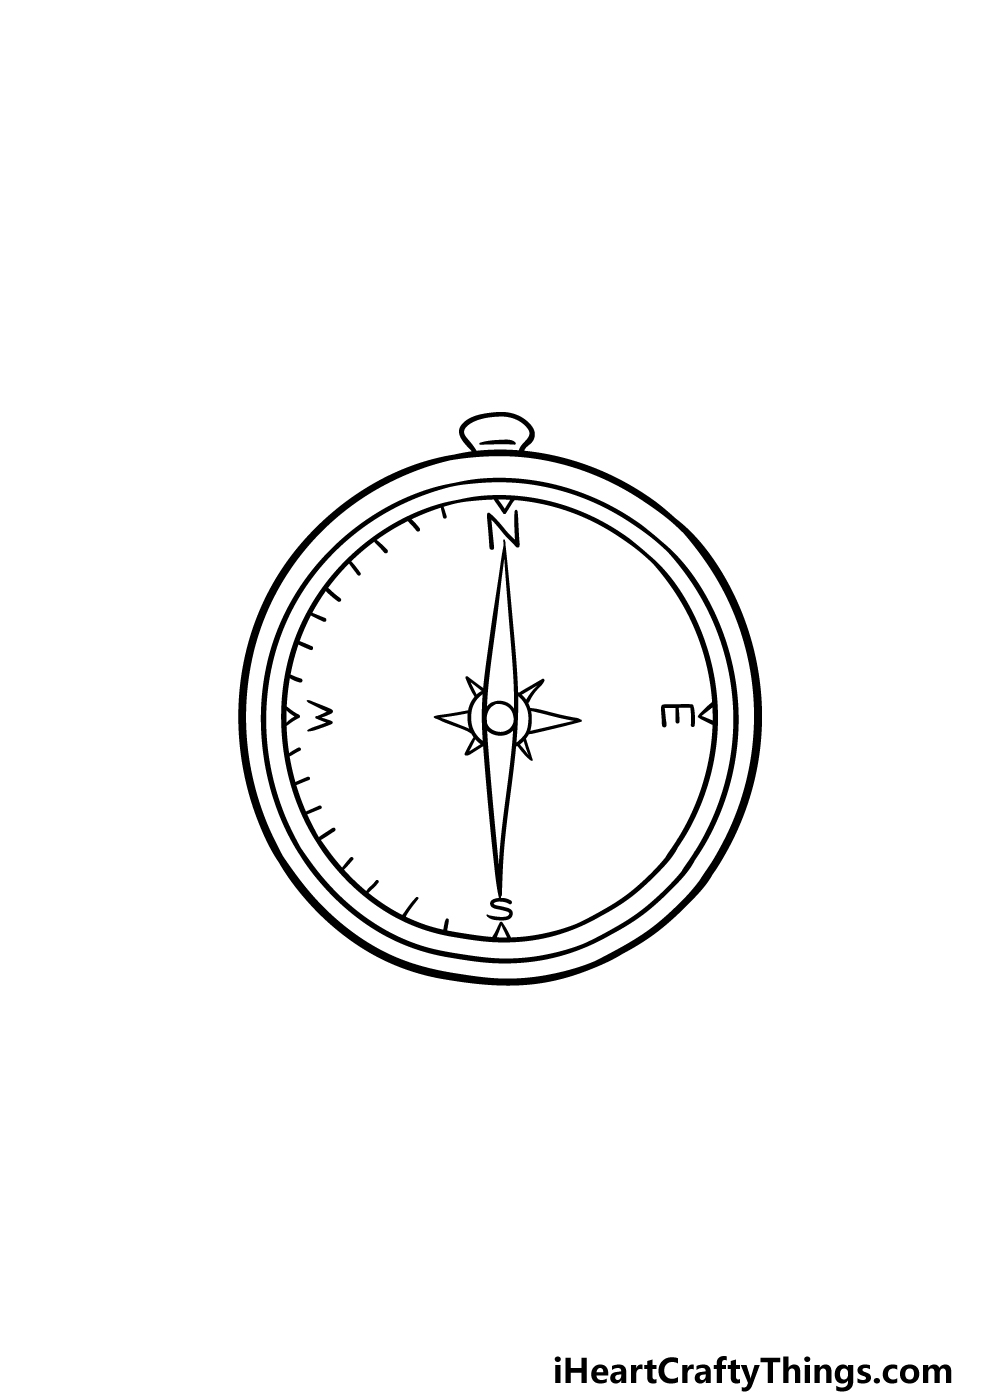 drawing a compass step 4